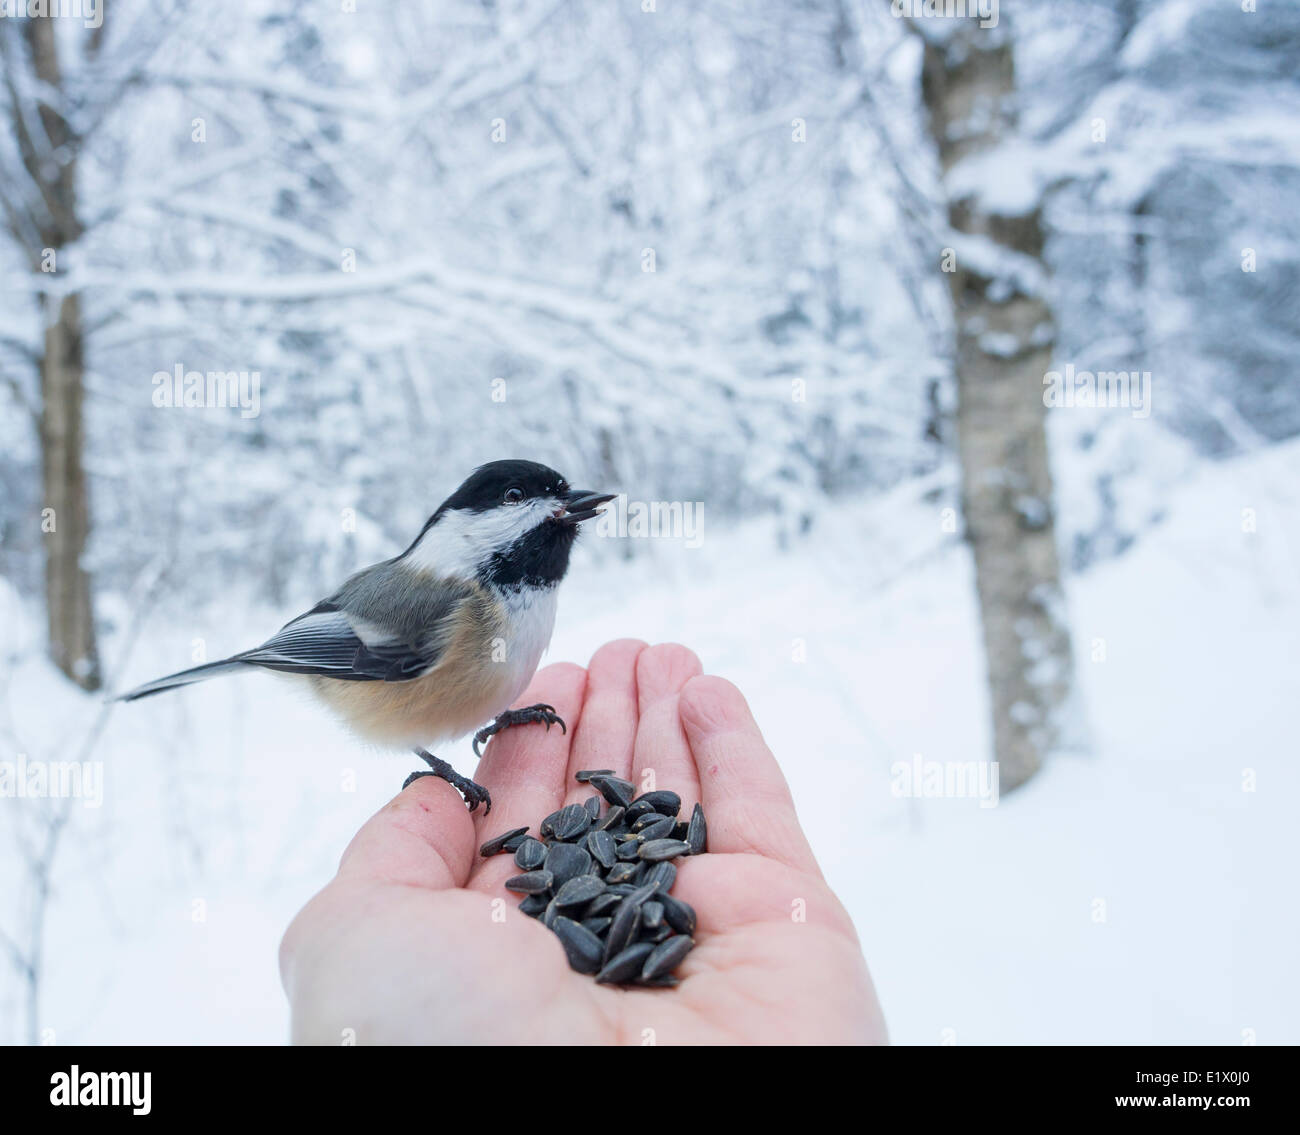 Black-capped Chickadee (Poecile atricapillus) is a small, nonmigratory, North American songbird, Hand Feeding Stock Photo